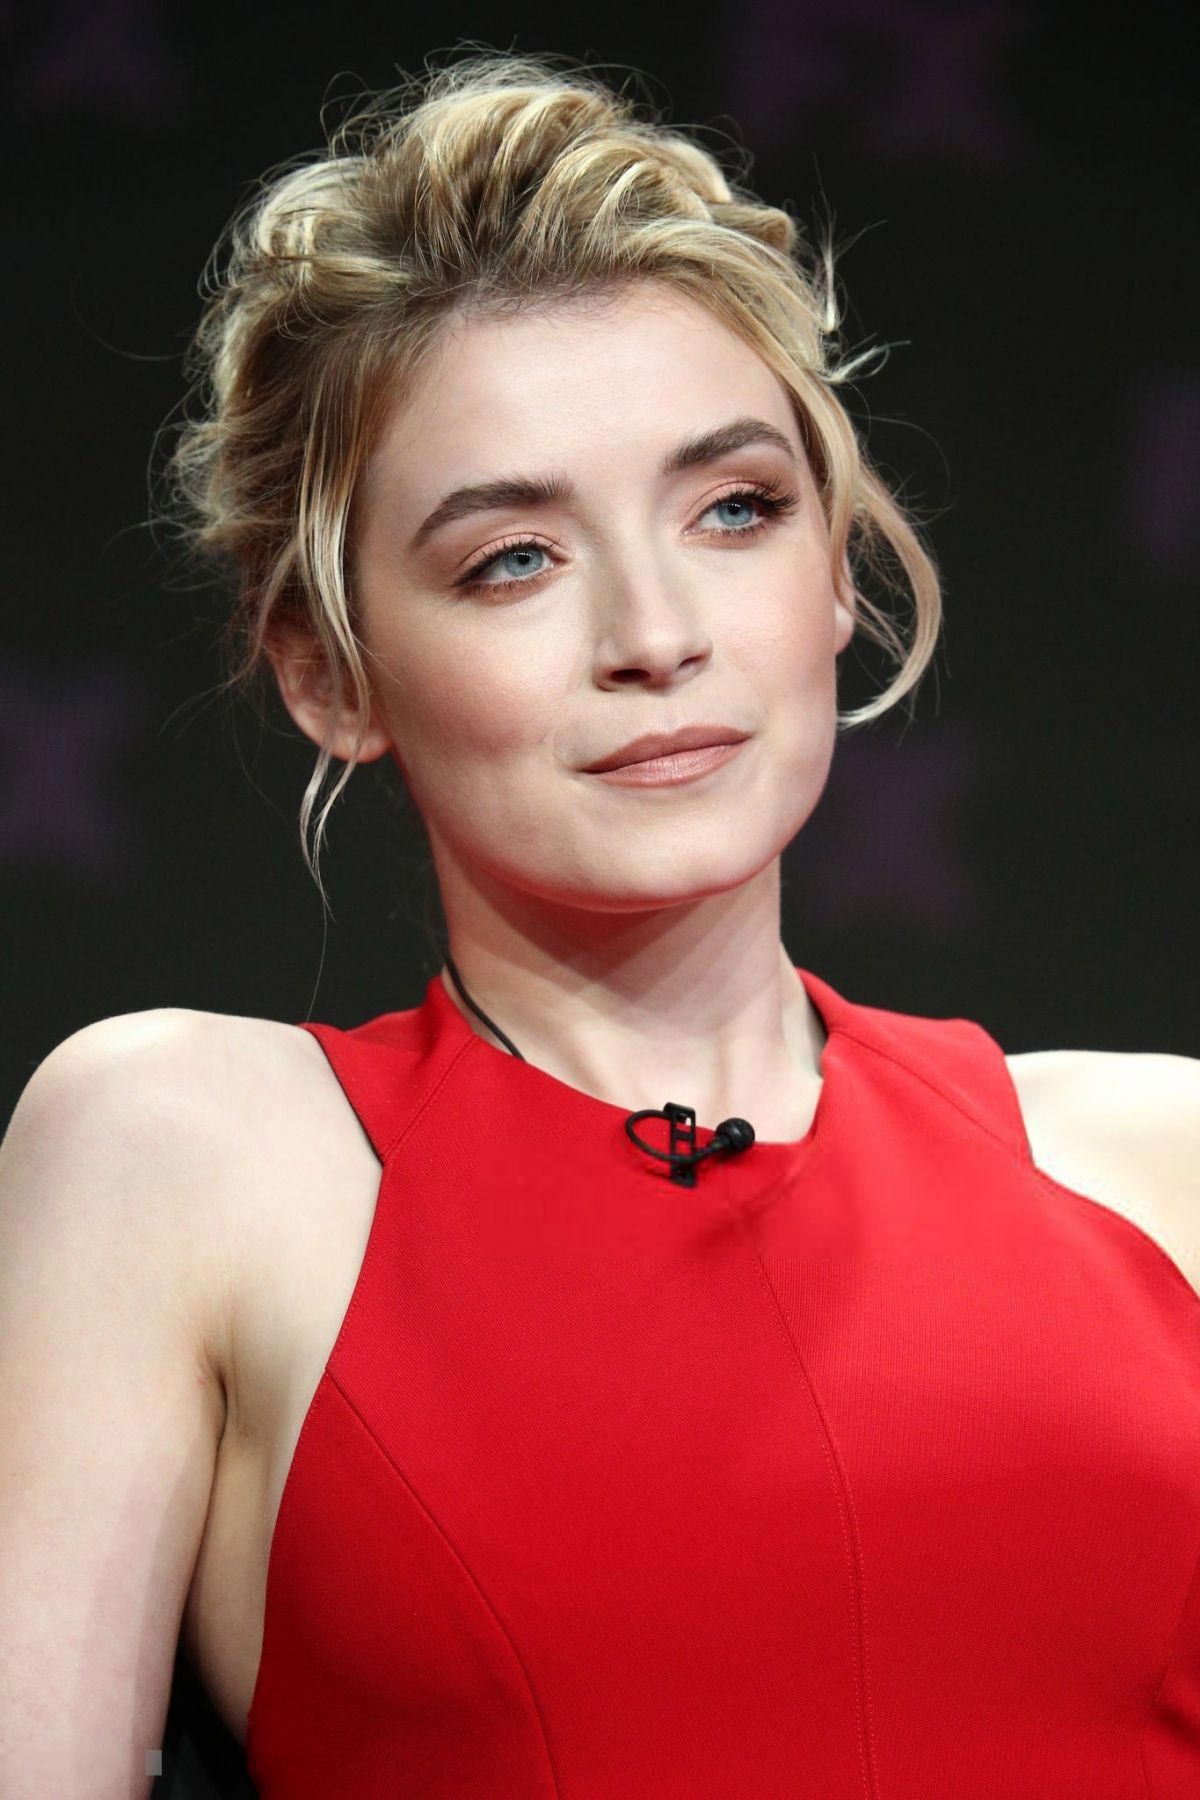 Fotos Sarah Bolger nude (72 foto and video), Tits, Hot, Selfie, butt 2020